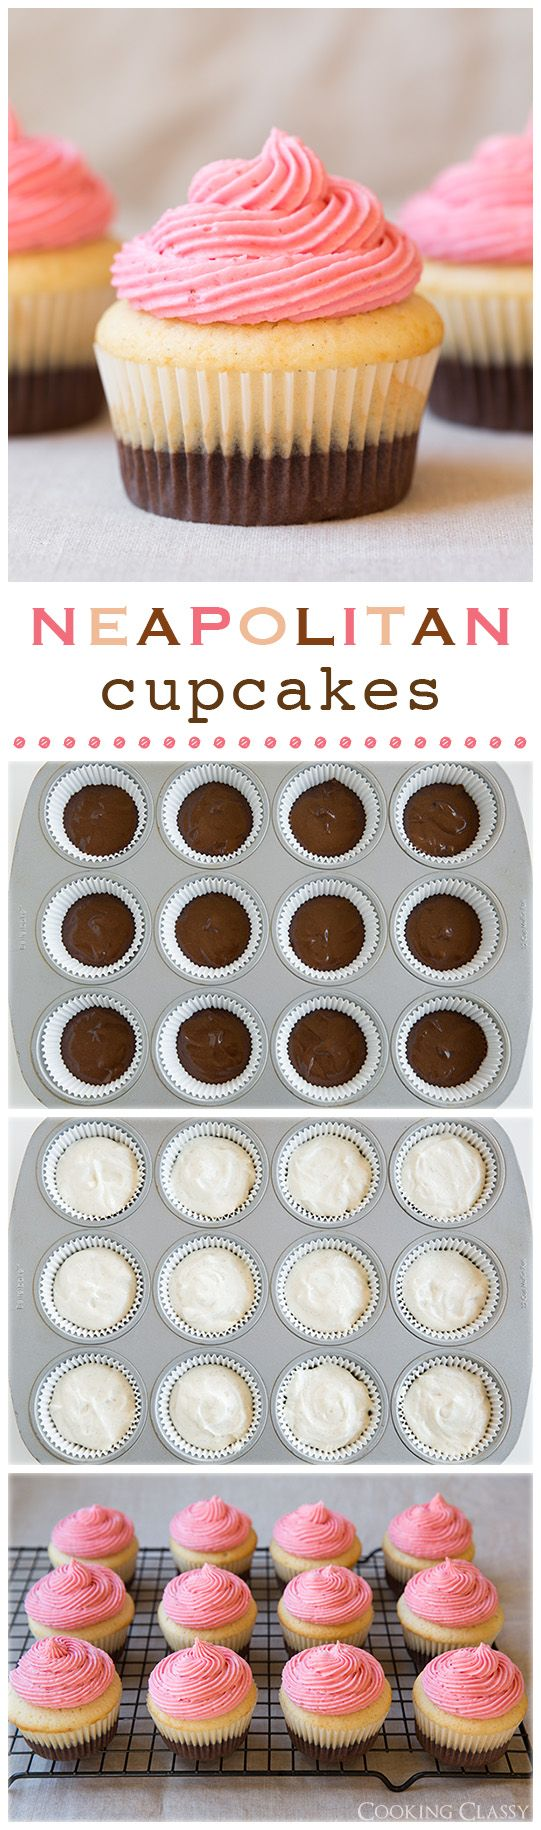 Neapolitan Cupcakes - these cupcakes are soft as clouds and the flavors are AMAZING! Milk chocolate, vanilla bean and fresh strawberry.